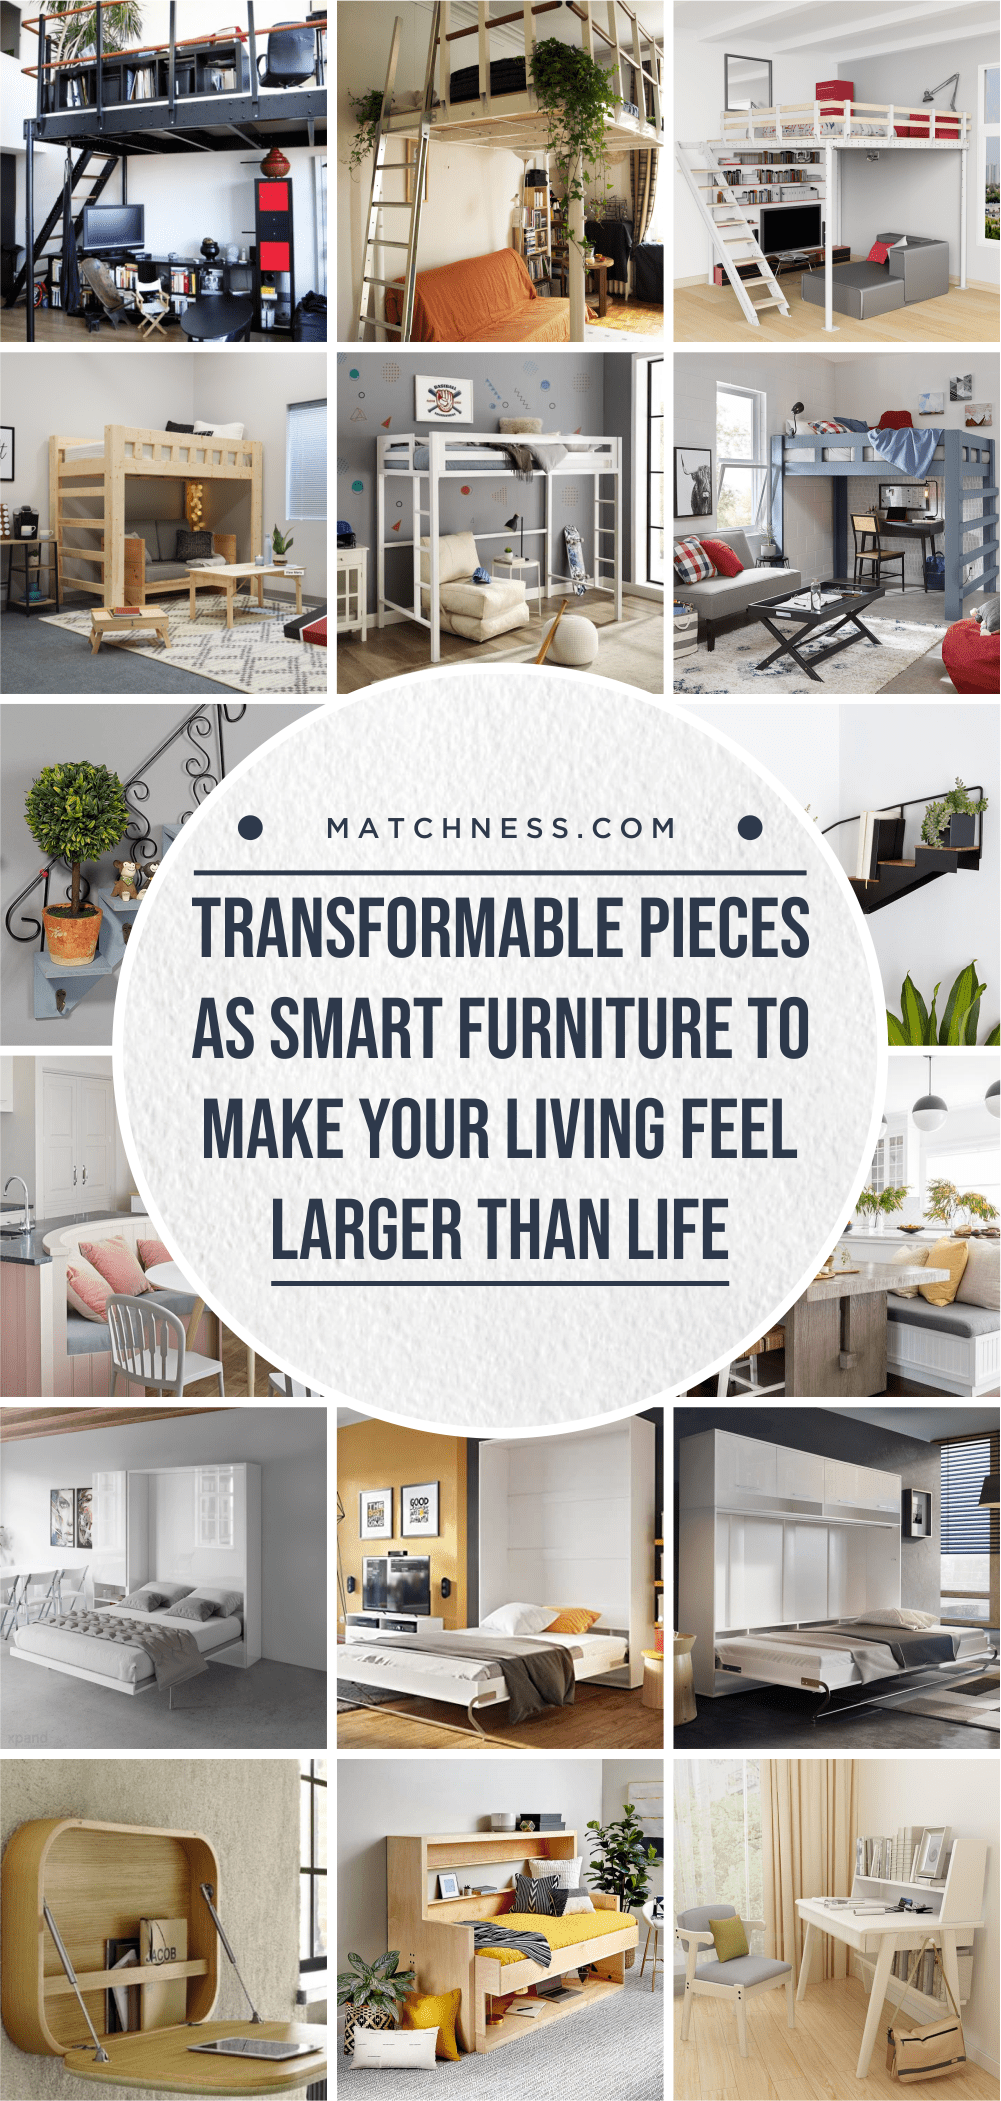 Transformable-pieces-as-smart-furniture-to-make-your-living-feel-larger-than-life-1